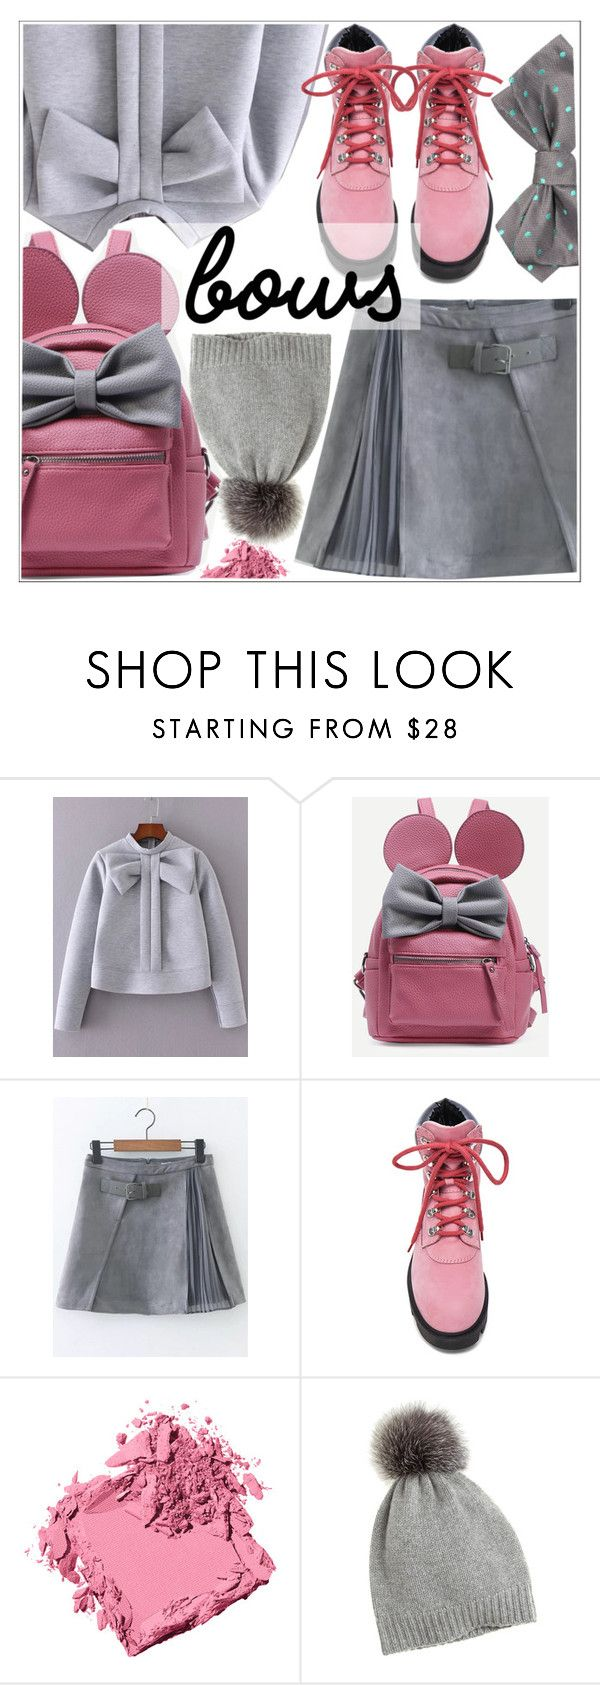 """Put a Bow on It!"" by teoecar ❤ liked on Polyvore featuring WithChic, Acne Studios, Bobbi Brown Cosmetics and Calypso St. Barth"